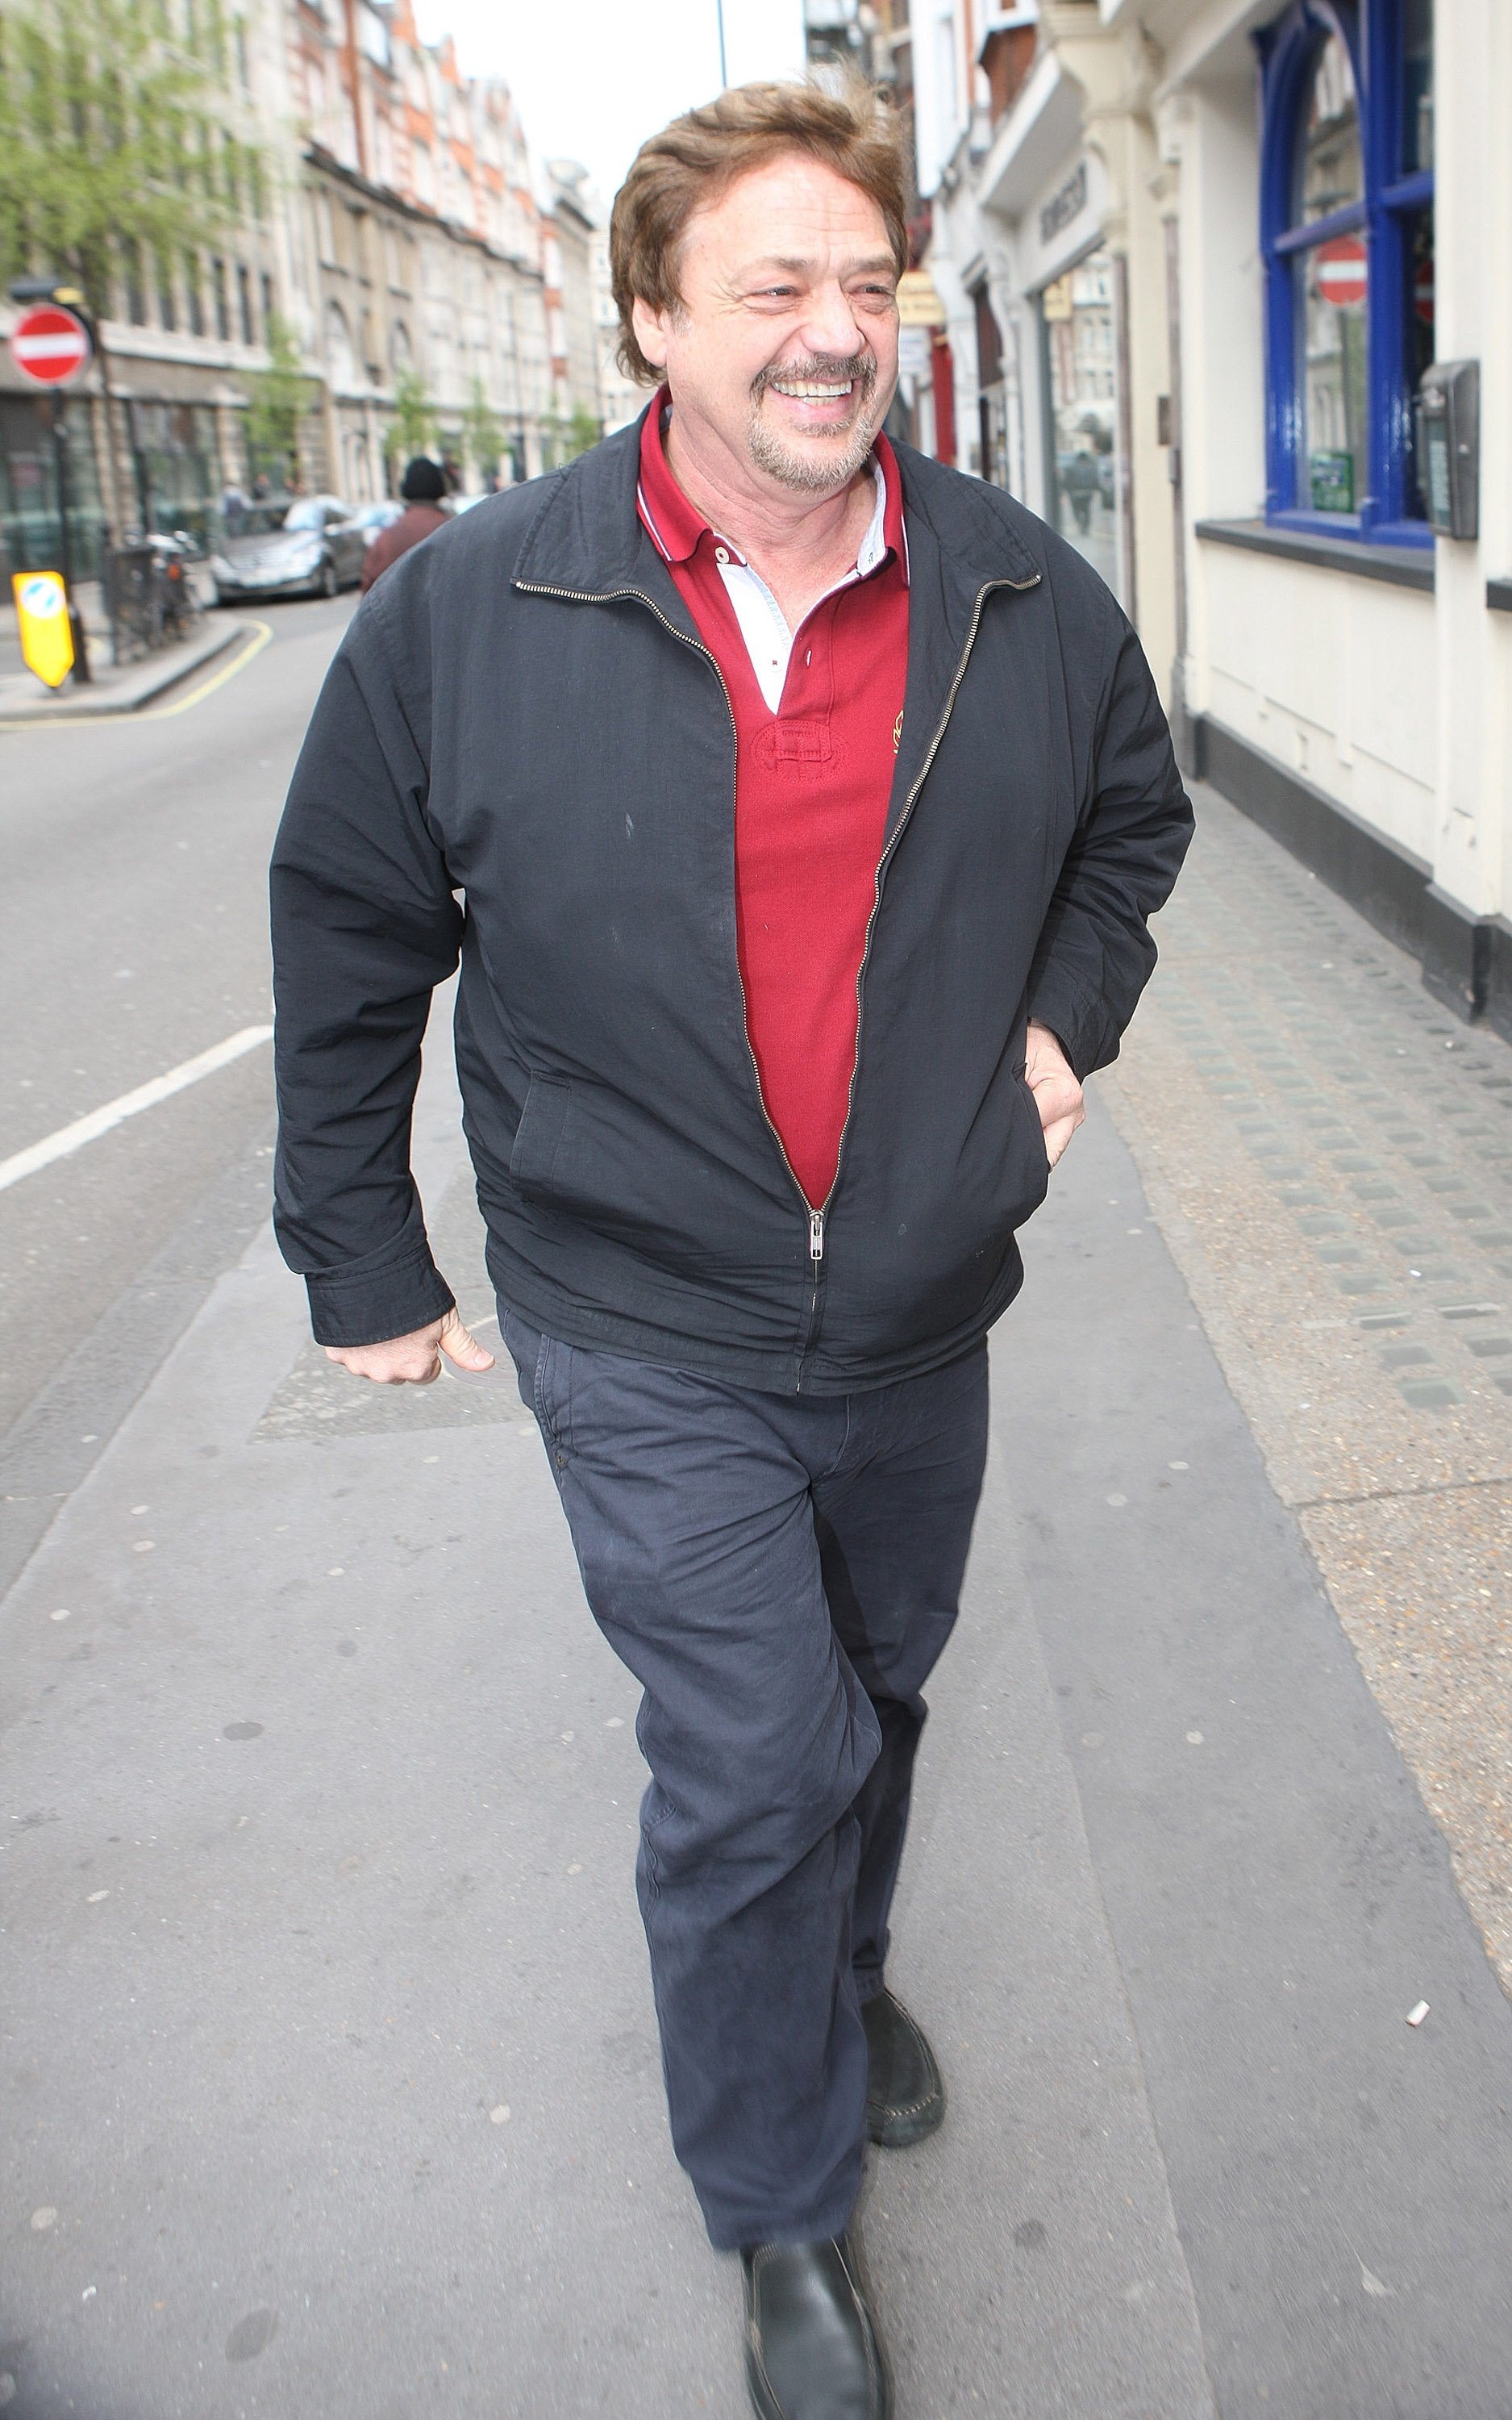 Jay Osmond sighted at BBC Radio 2 on April 16, 2012, in London, England.   Source: Getty Images.